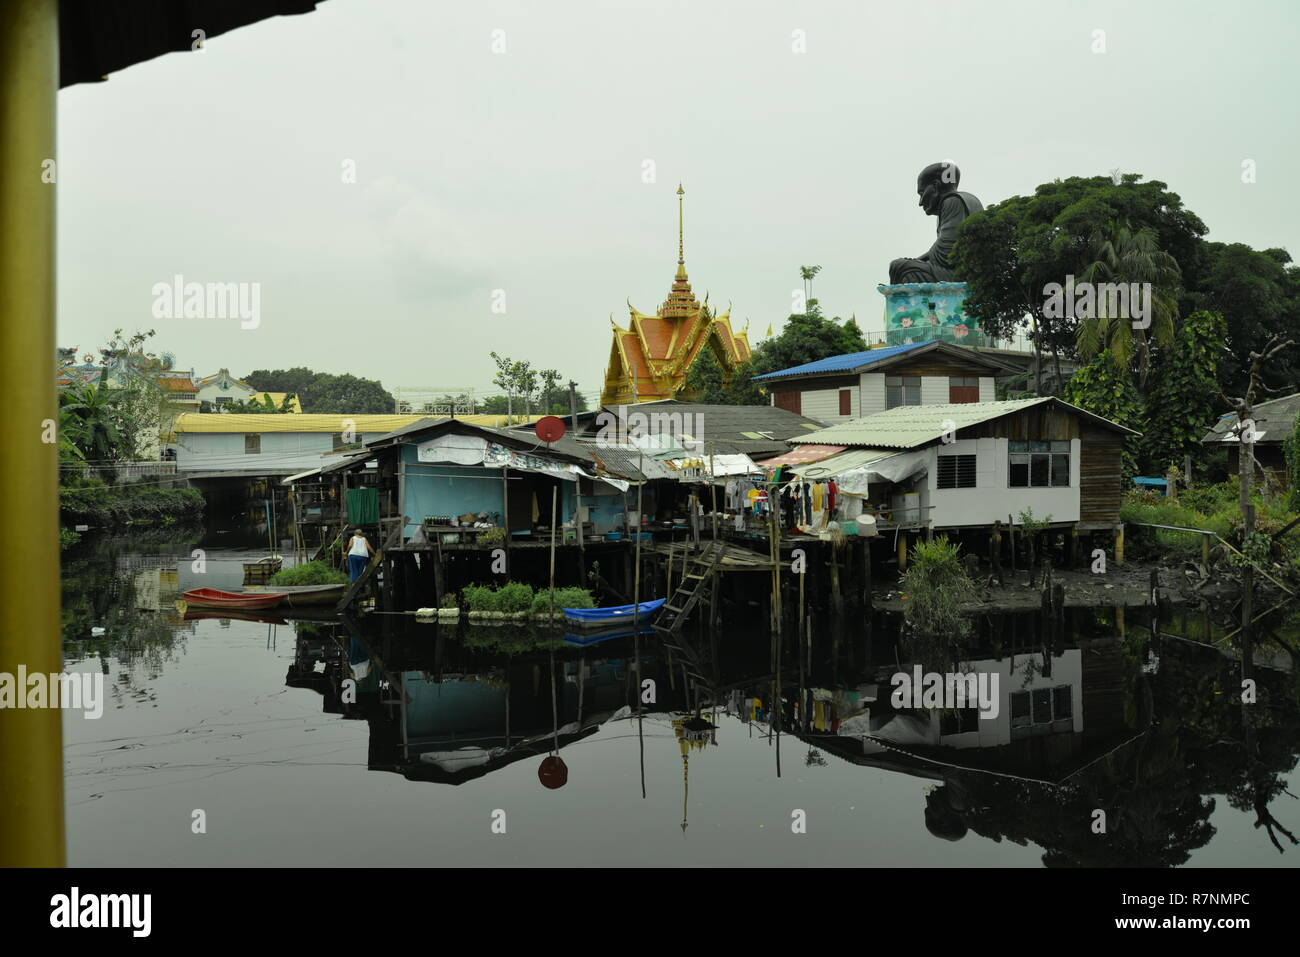 Waterway beneath a statue of a monk, pasakdek - Stock Image